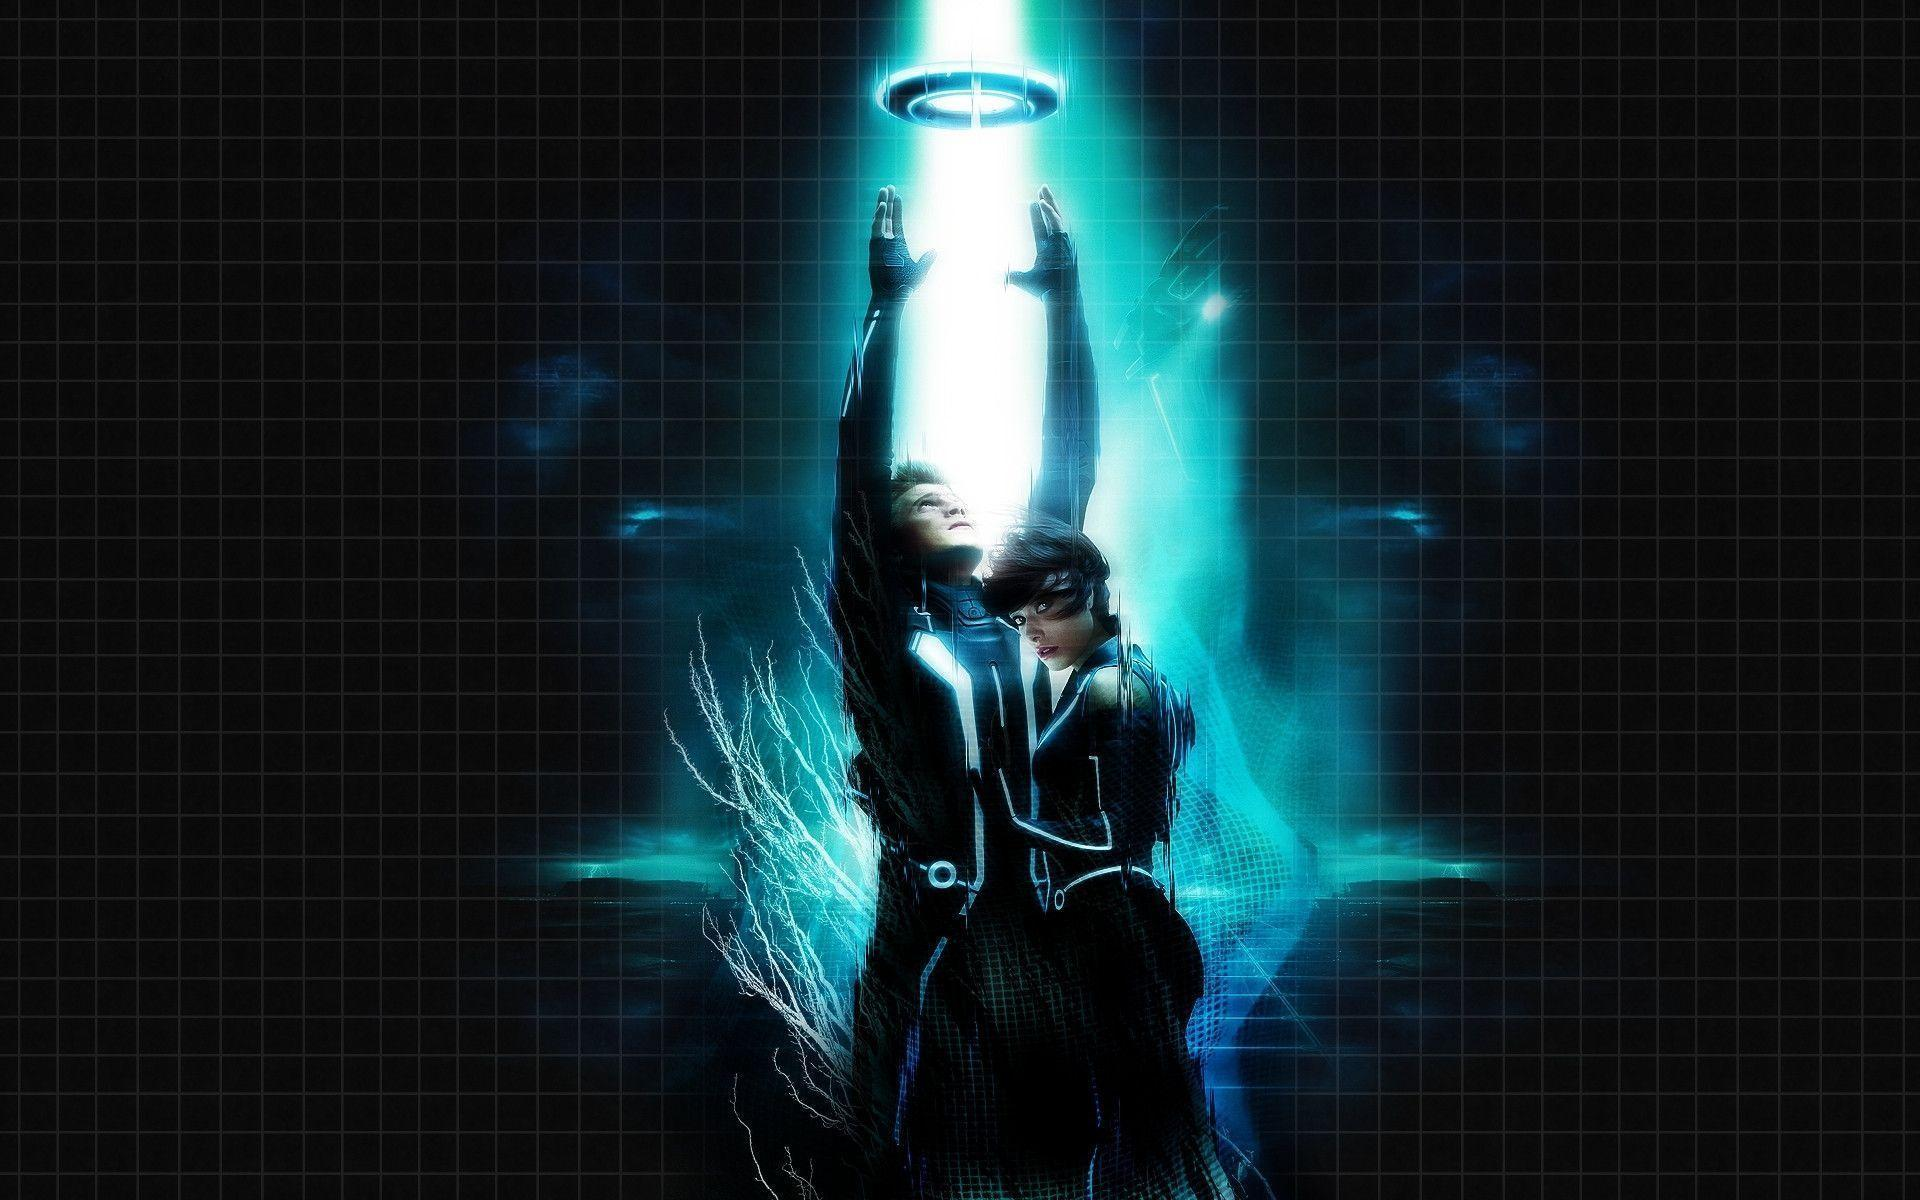 Tron Live Wallpaper Android Wallpapers